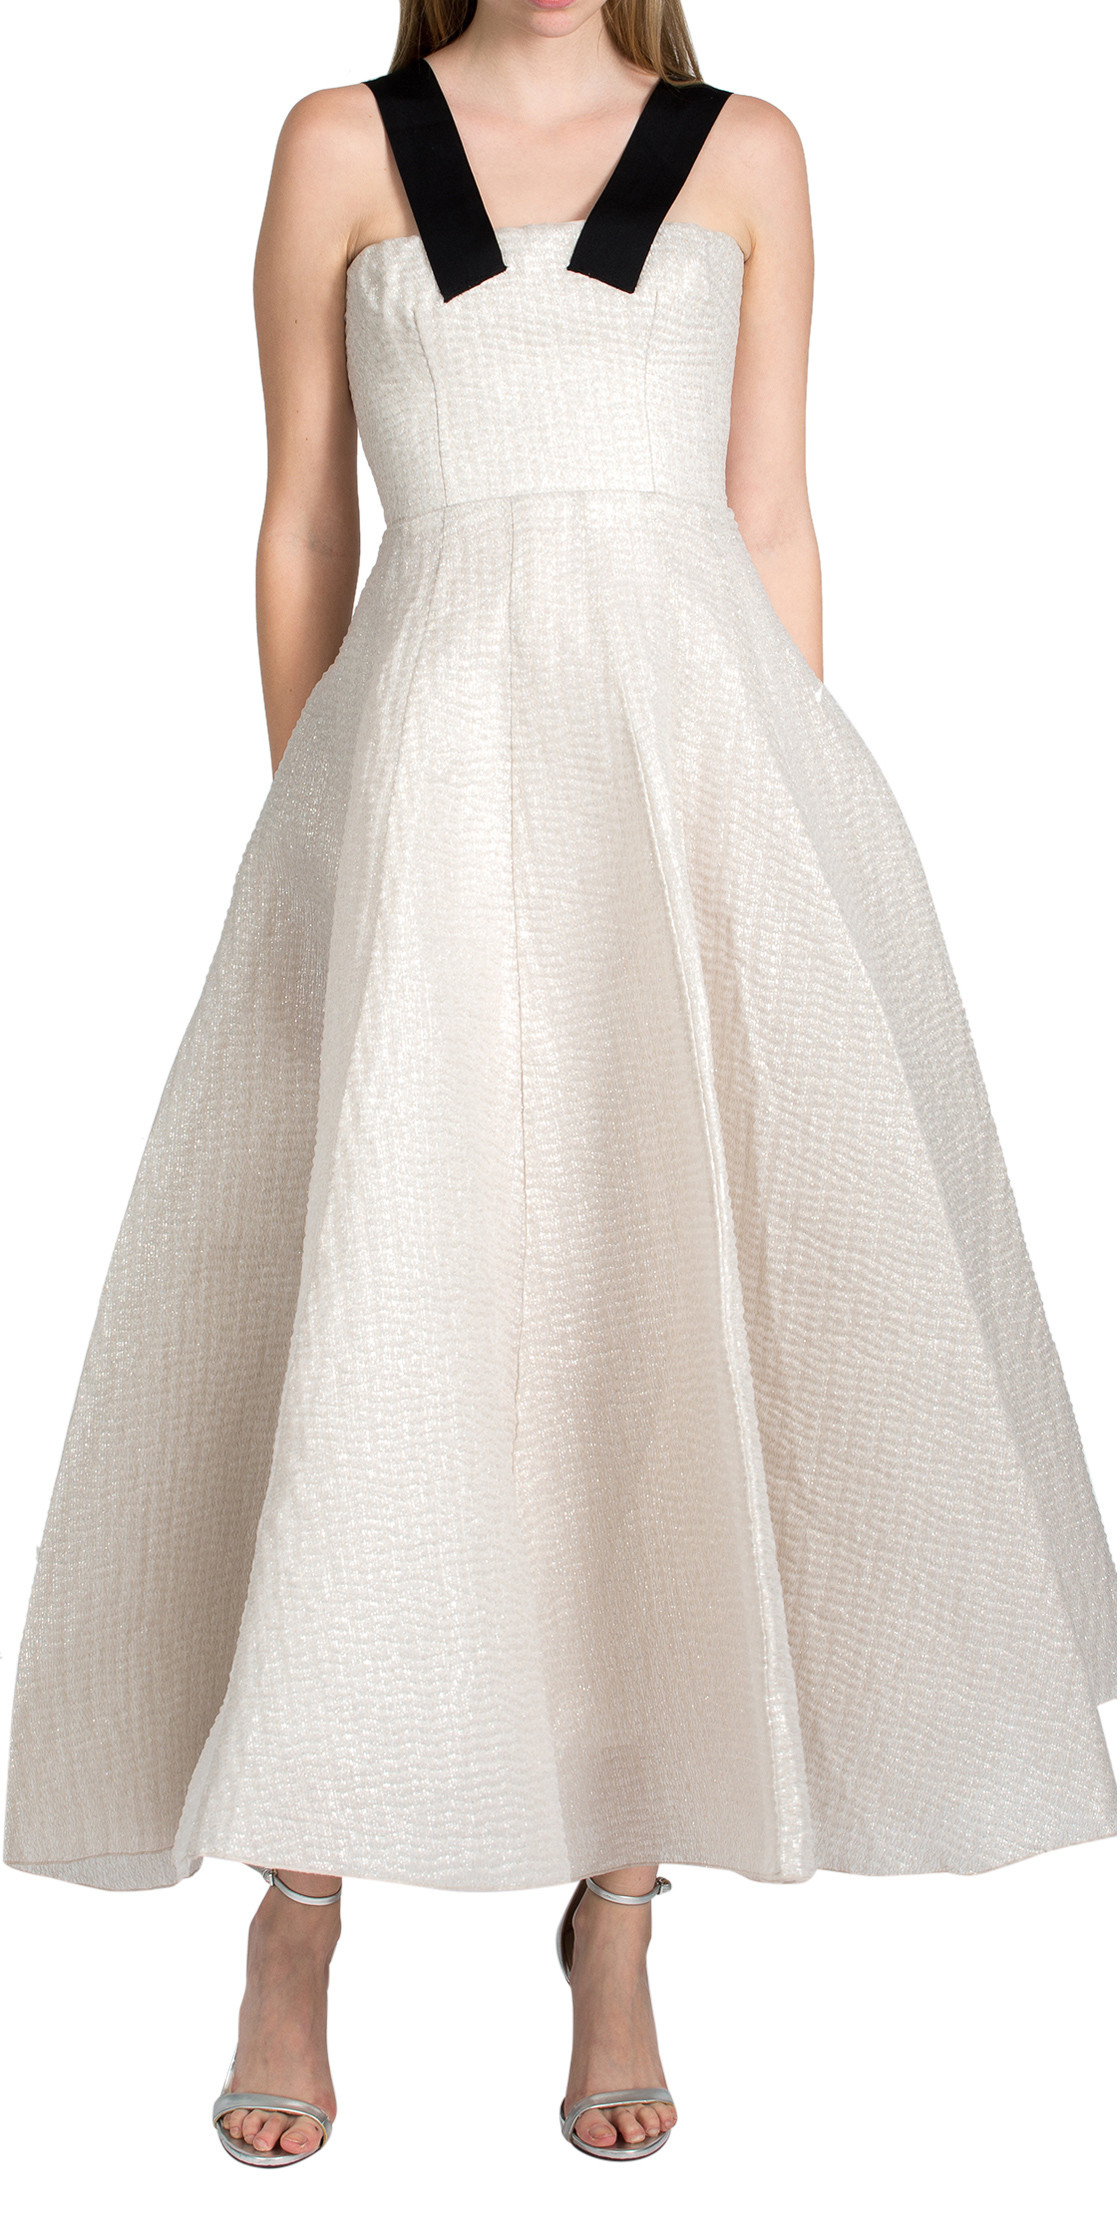 Alex Perry - lurex strapped corset midi | Wedding Dresses Rental ...